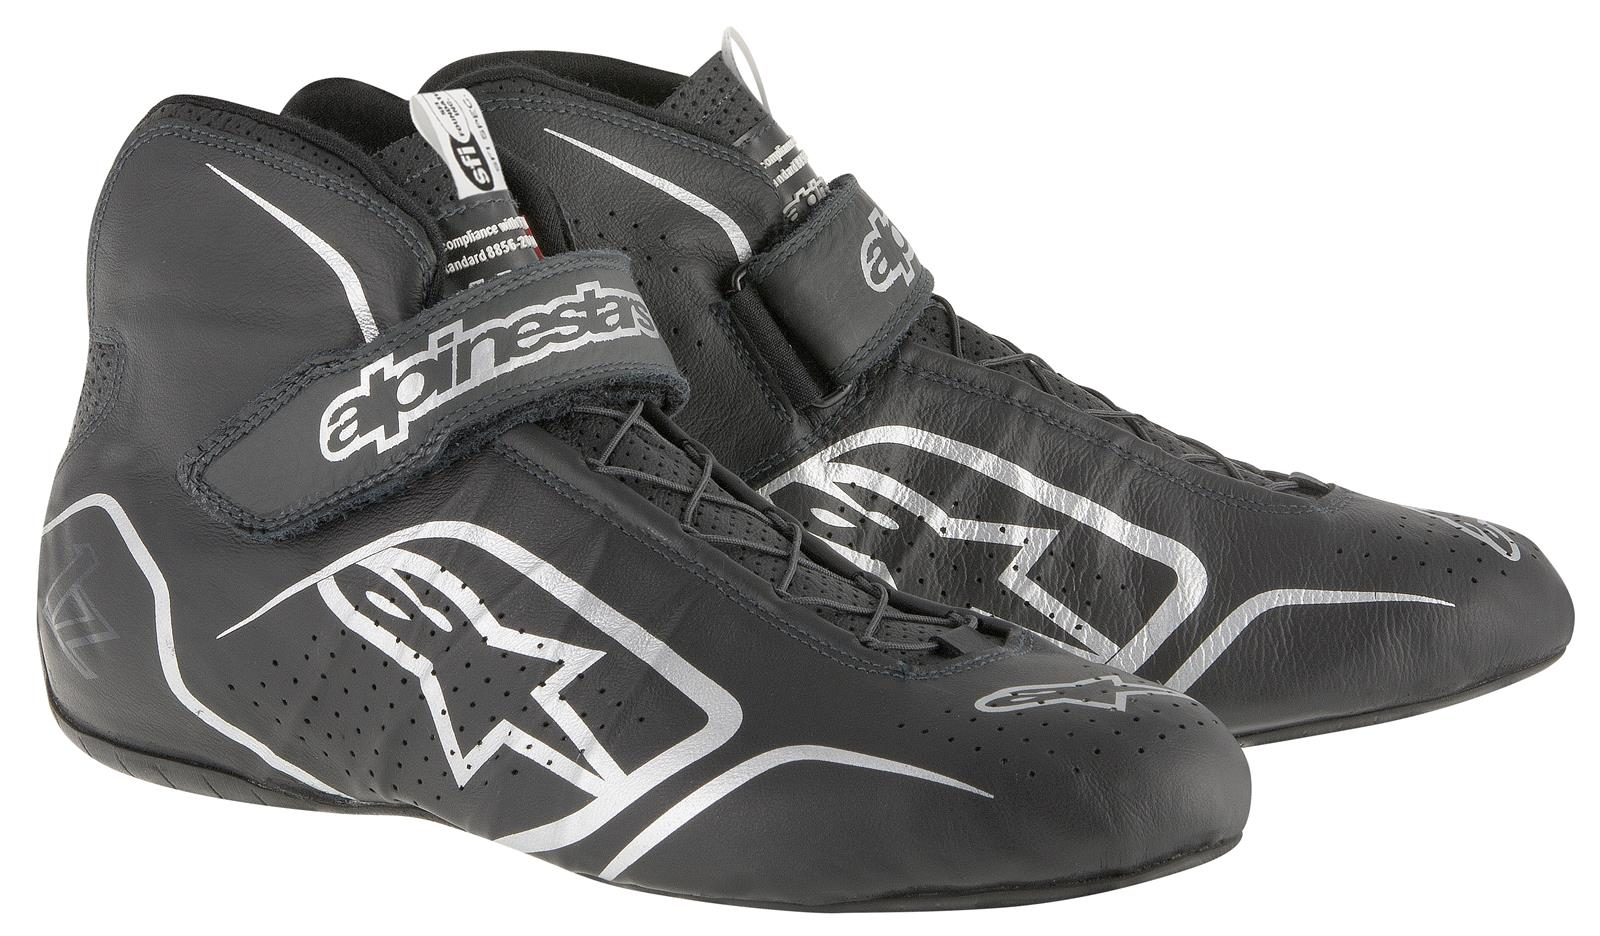 Alpinestars 2711518-12B-10.5 TECH 1-K START SHOES BLACK//WHITE PR SIZE 10.5